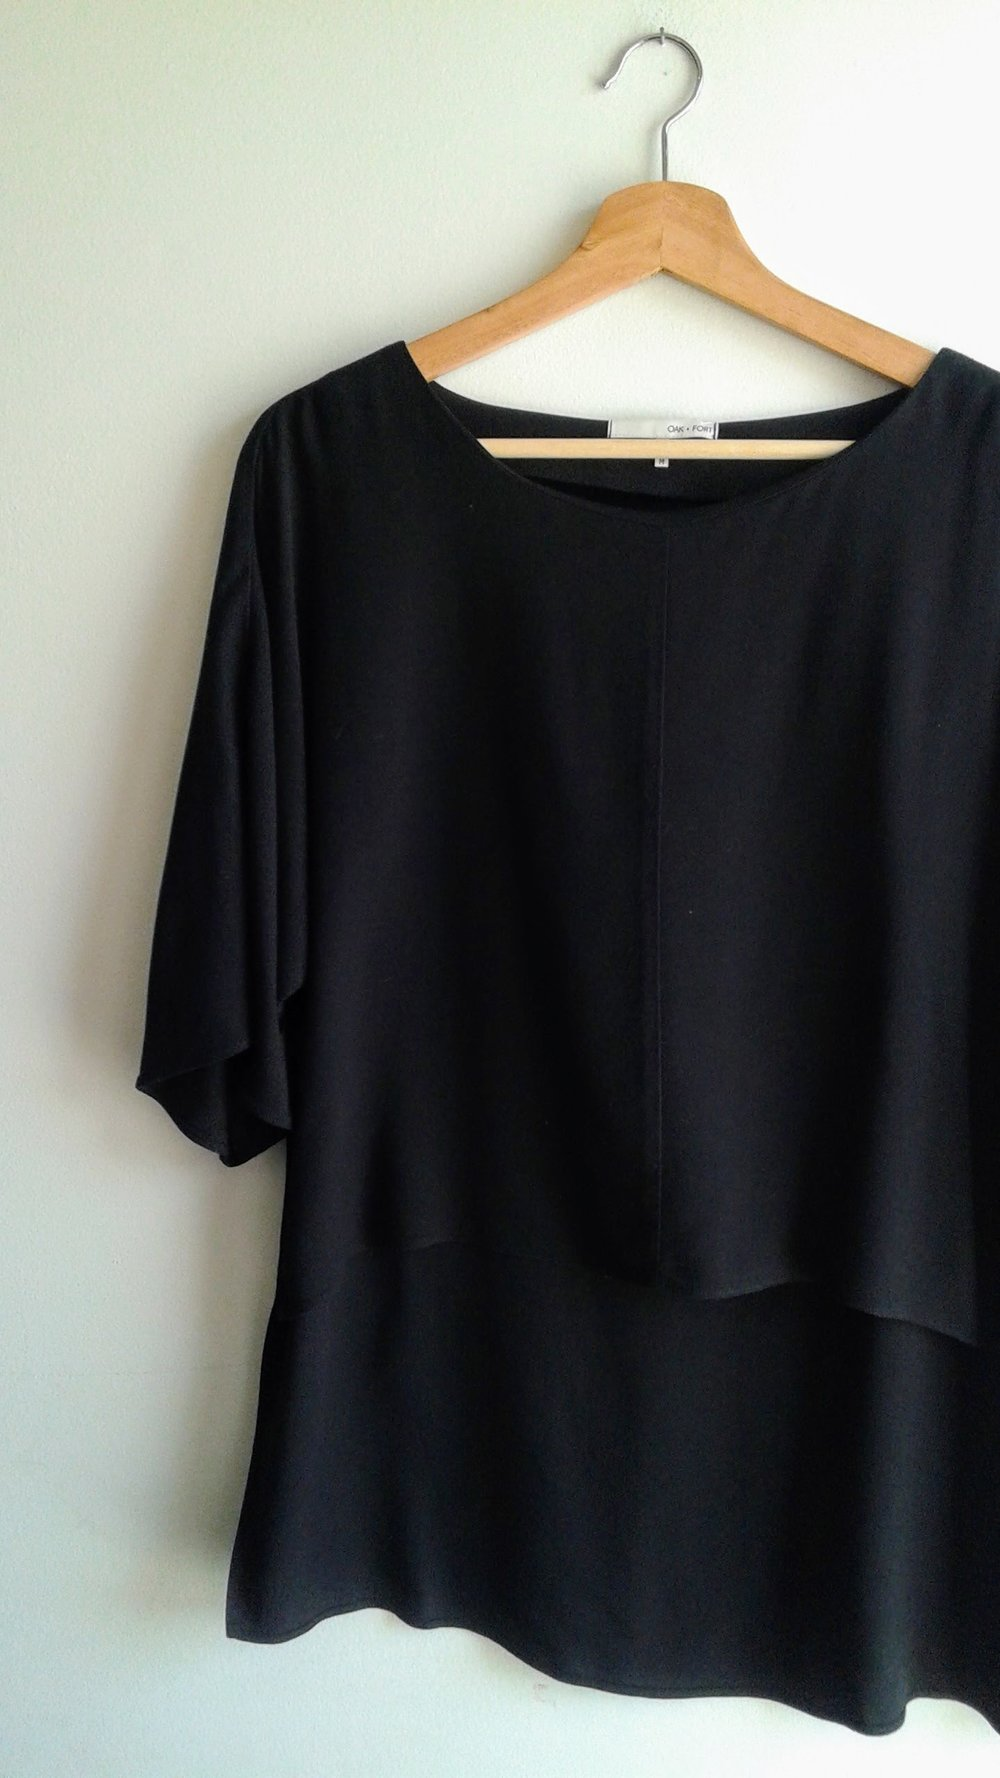 Oak+Fort top; Size M, $36